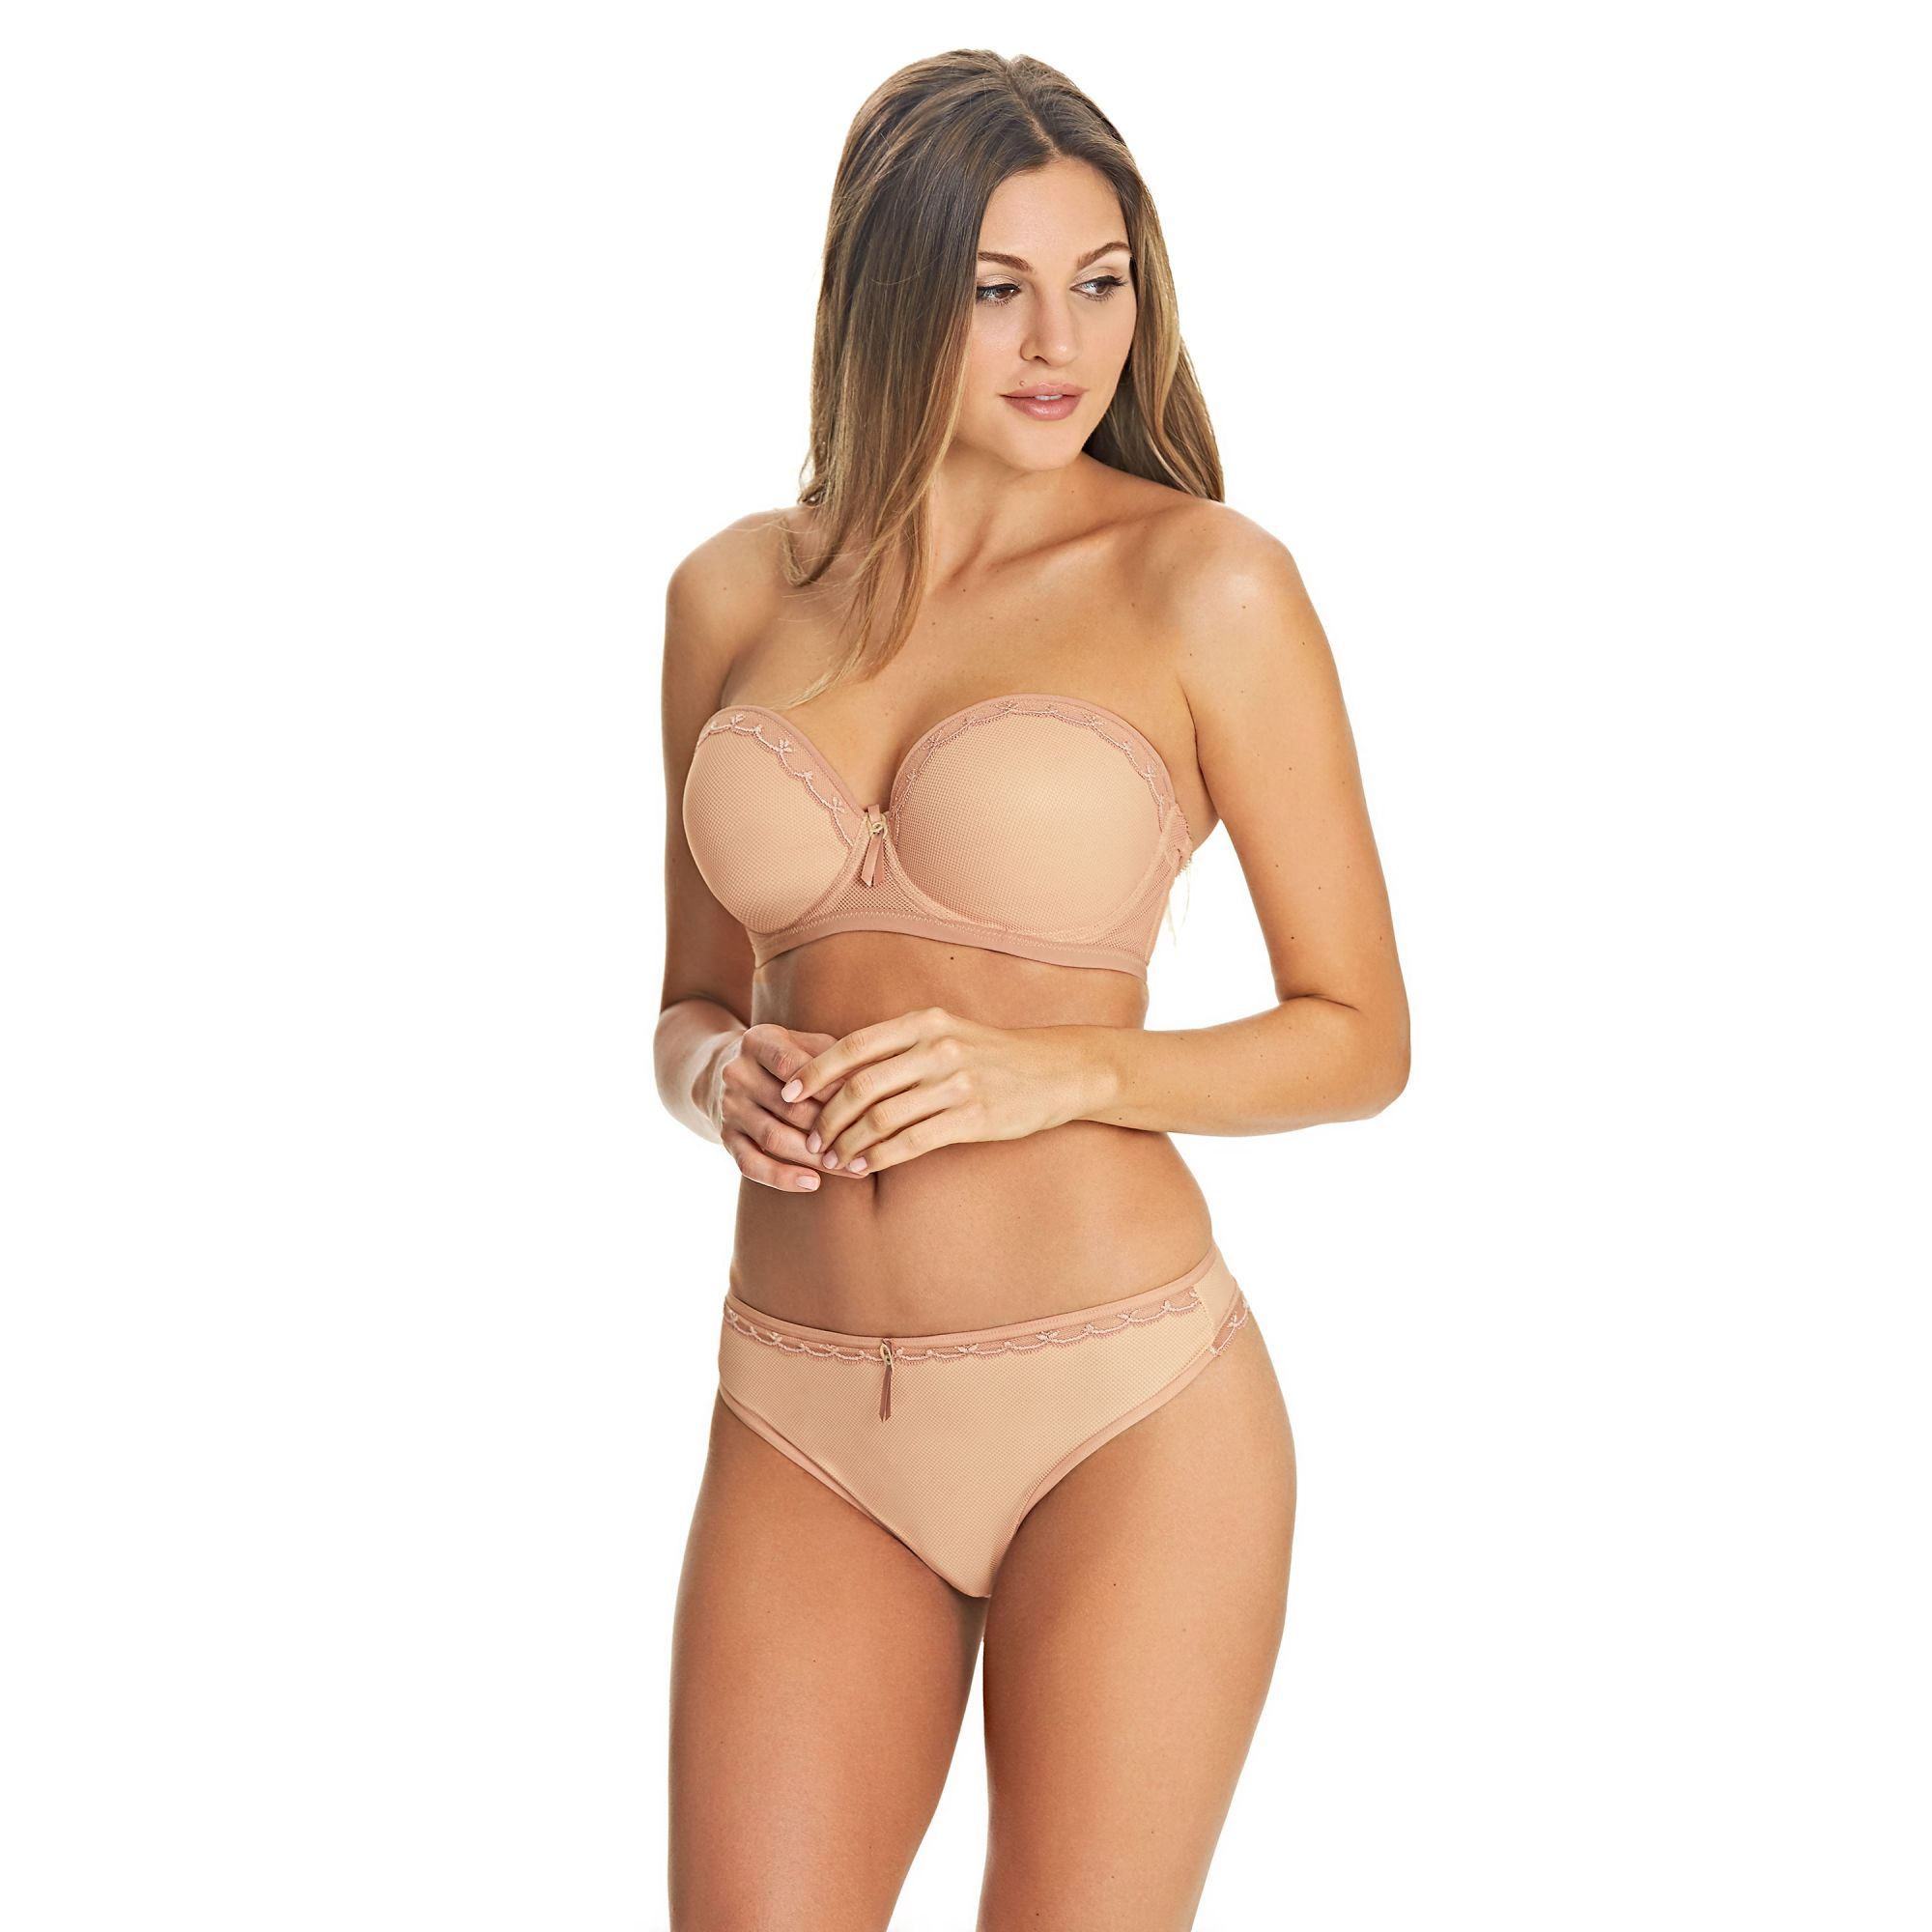 Freya Allure strapless in nude